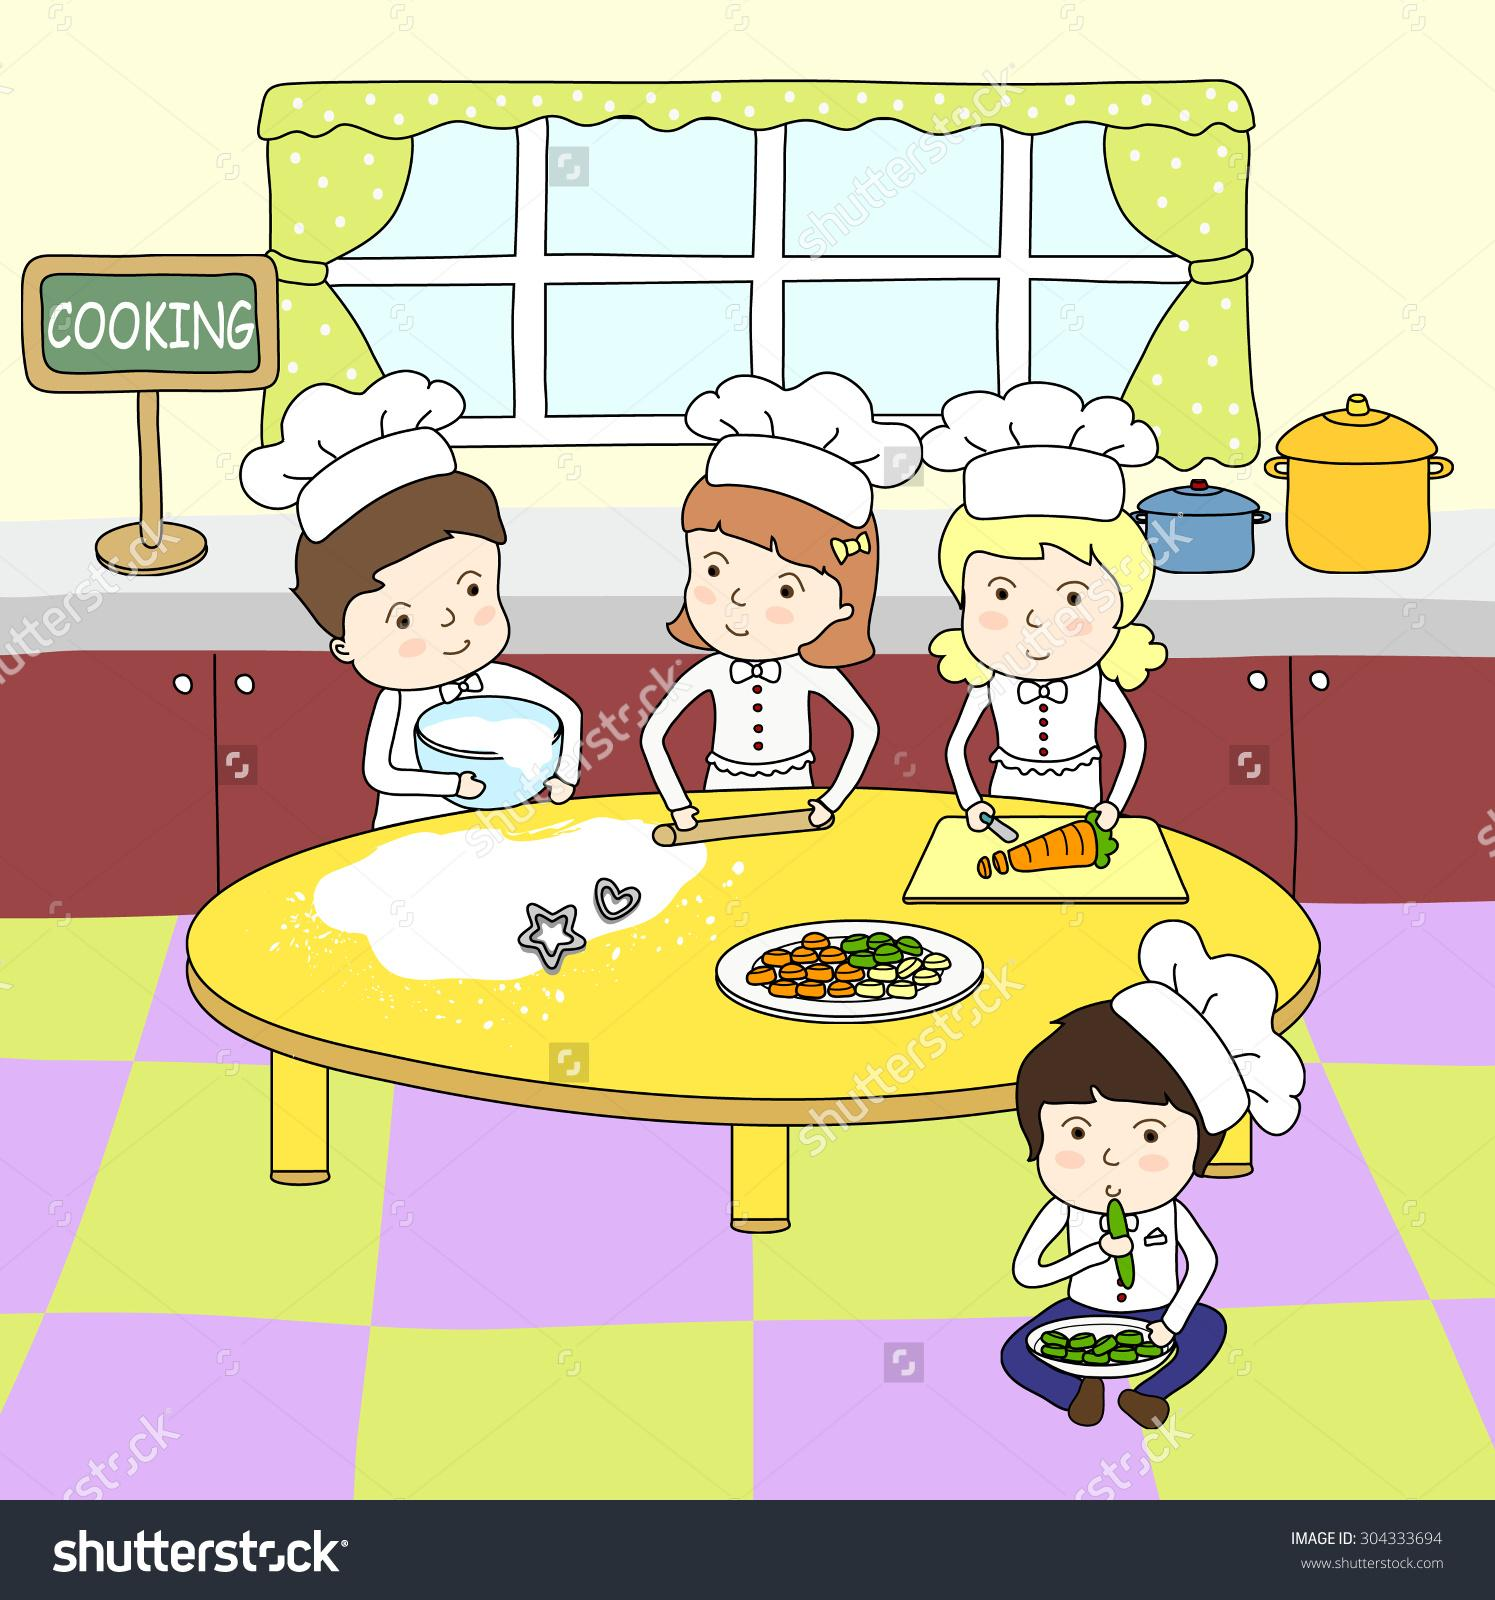 Free Cooking Class Cliparts, Download Free Clip Art, Free.